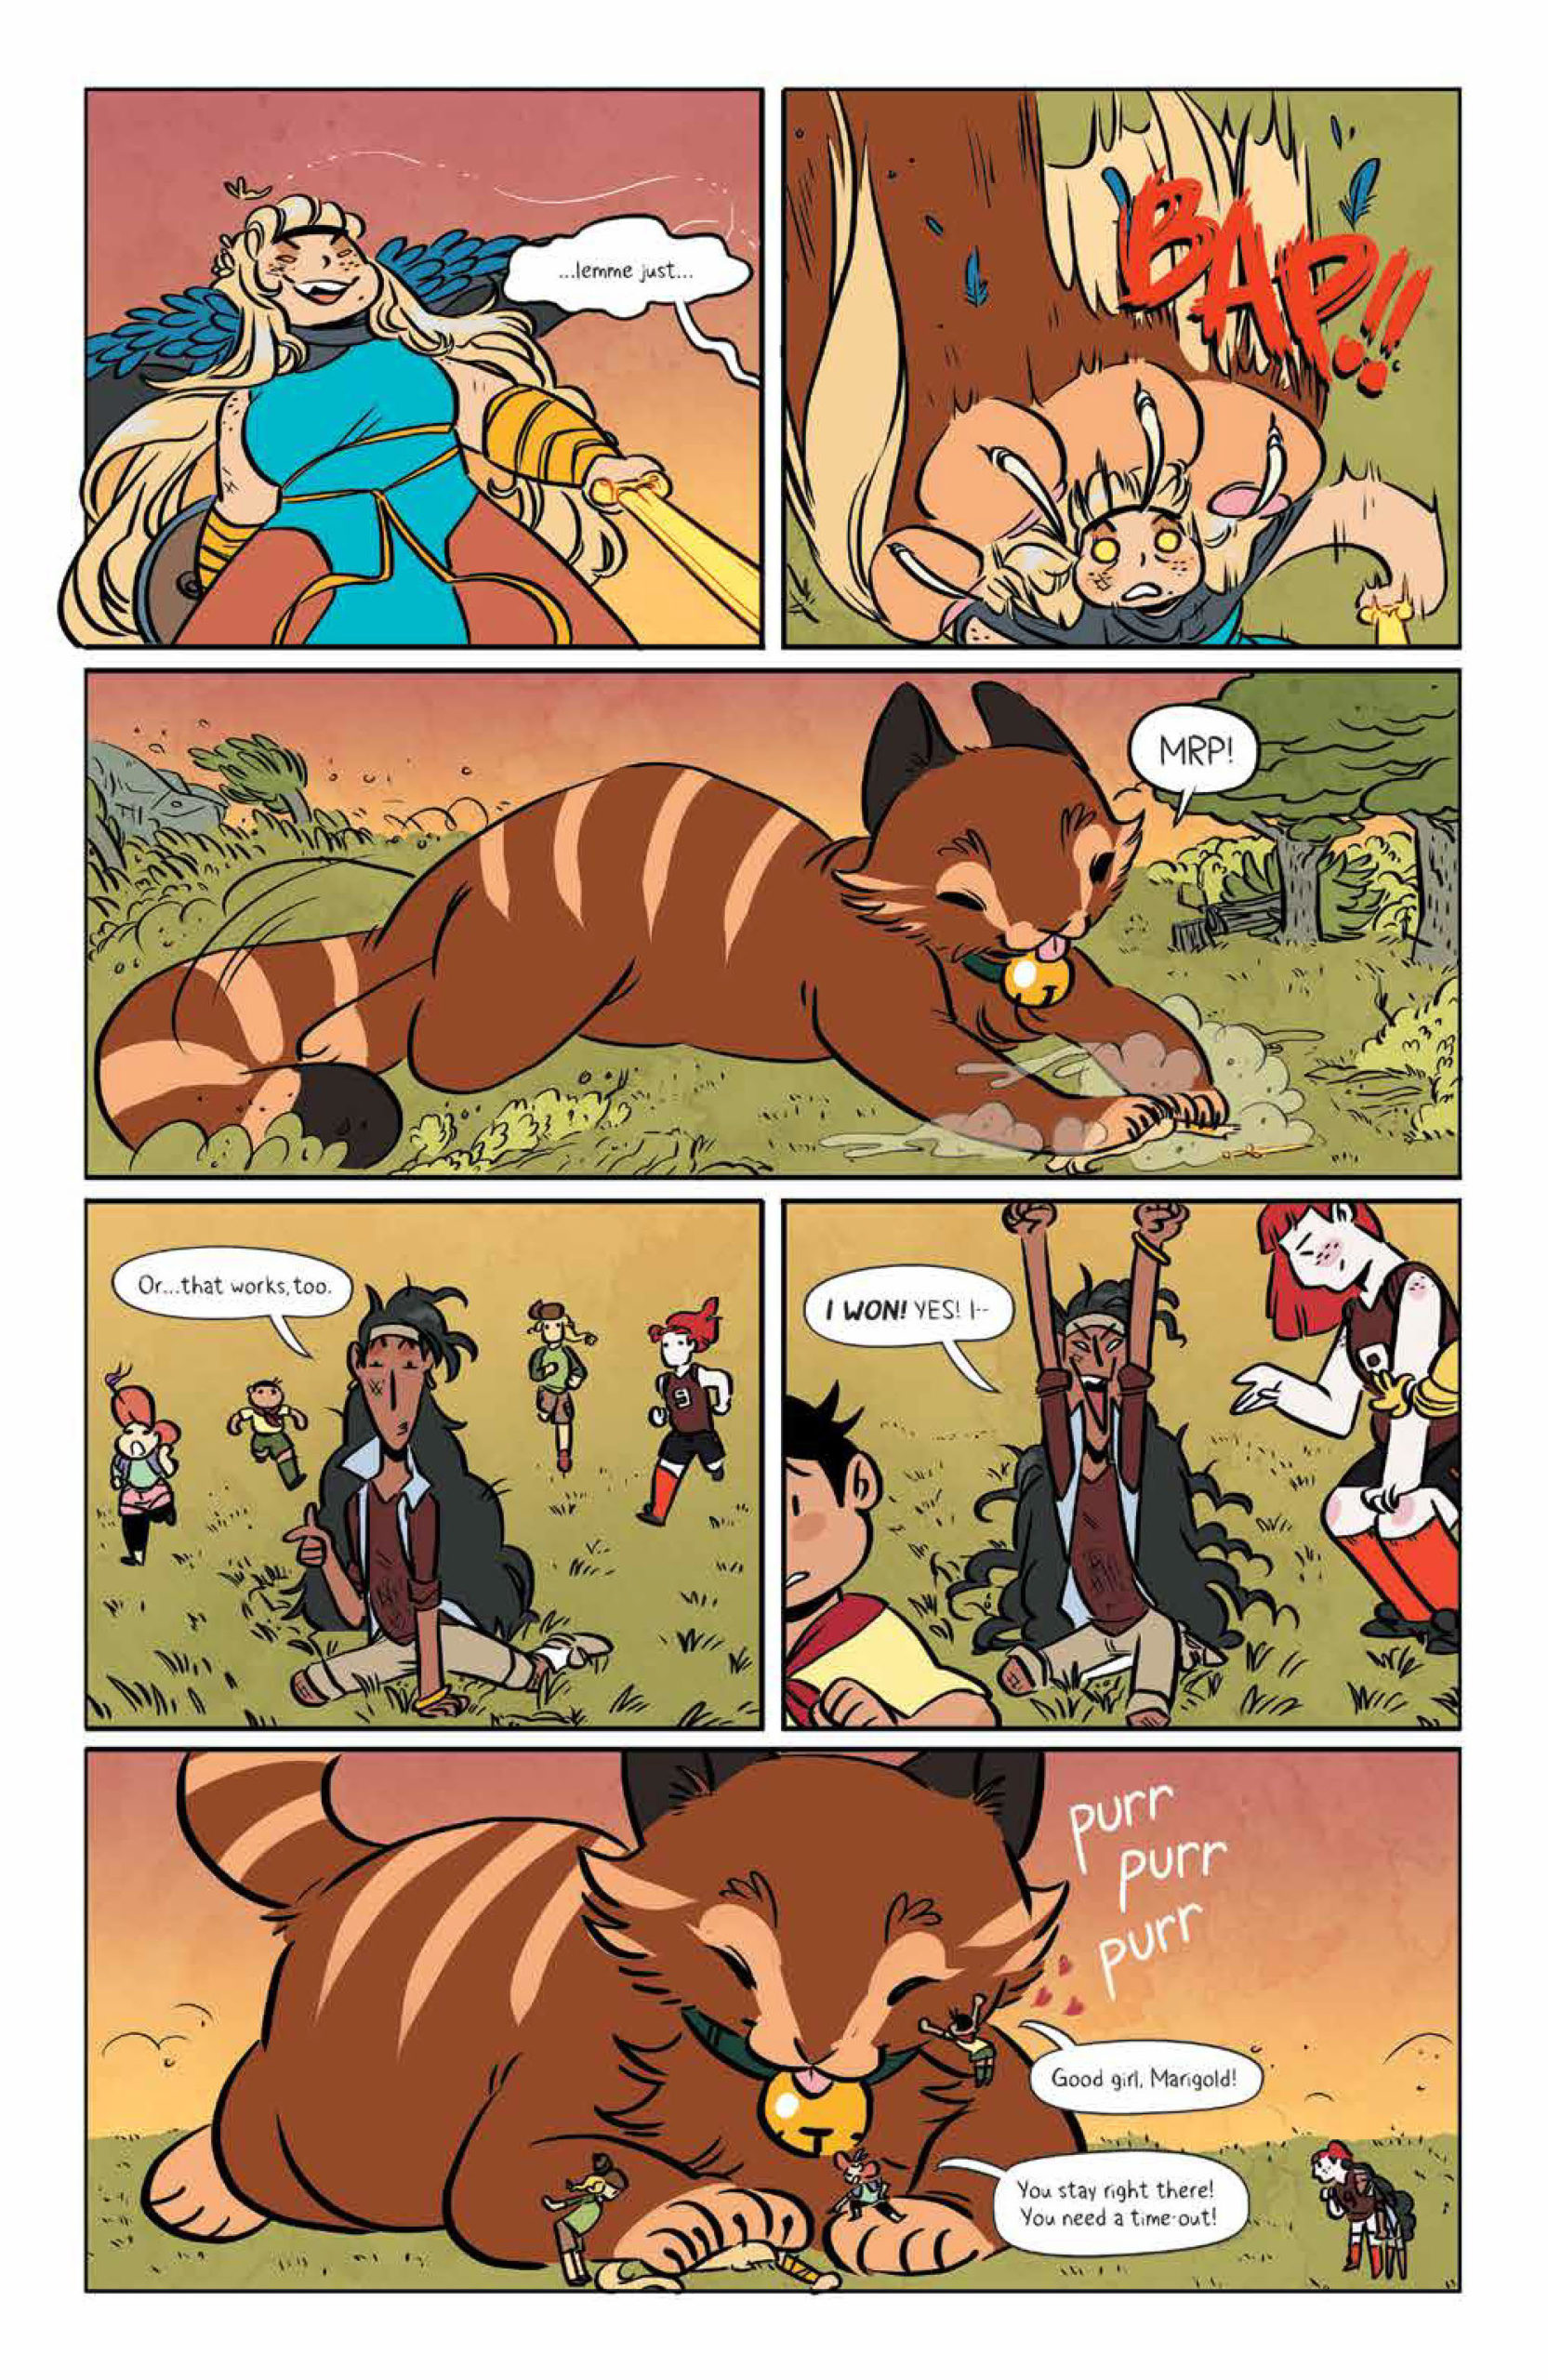 Freya is stepped on by Marigold on page 7 of Lumberjanes #68